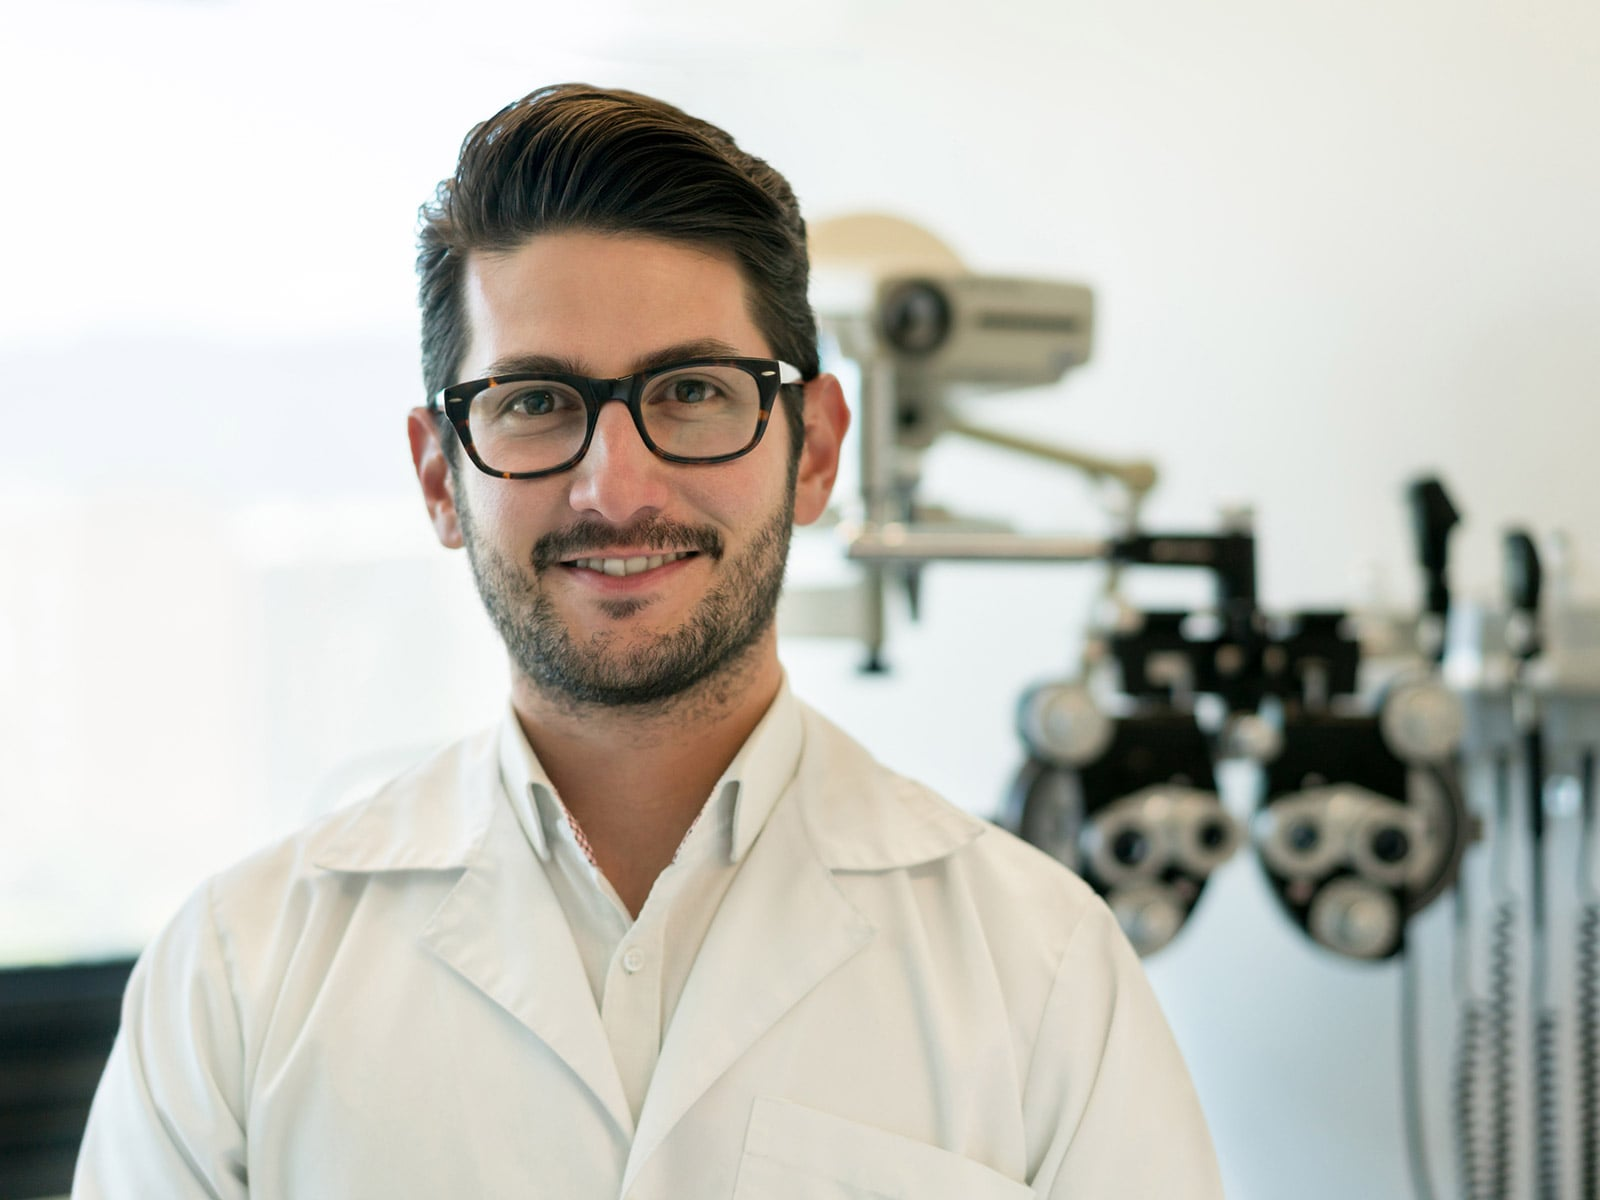 Ophthalmologist and Gymnastics Center Small Business Success Stories